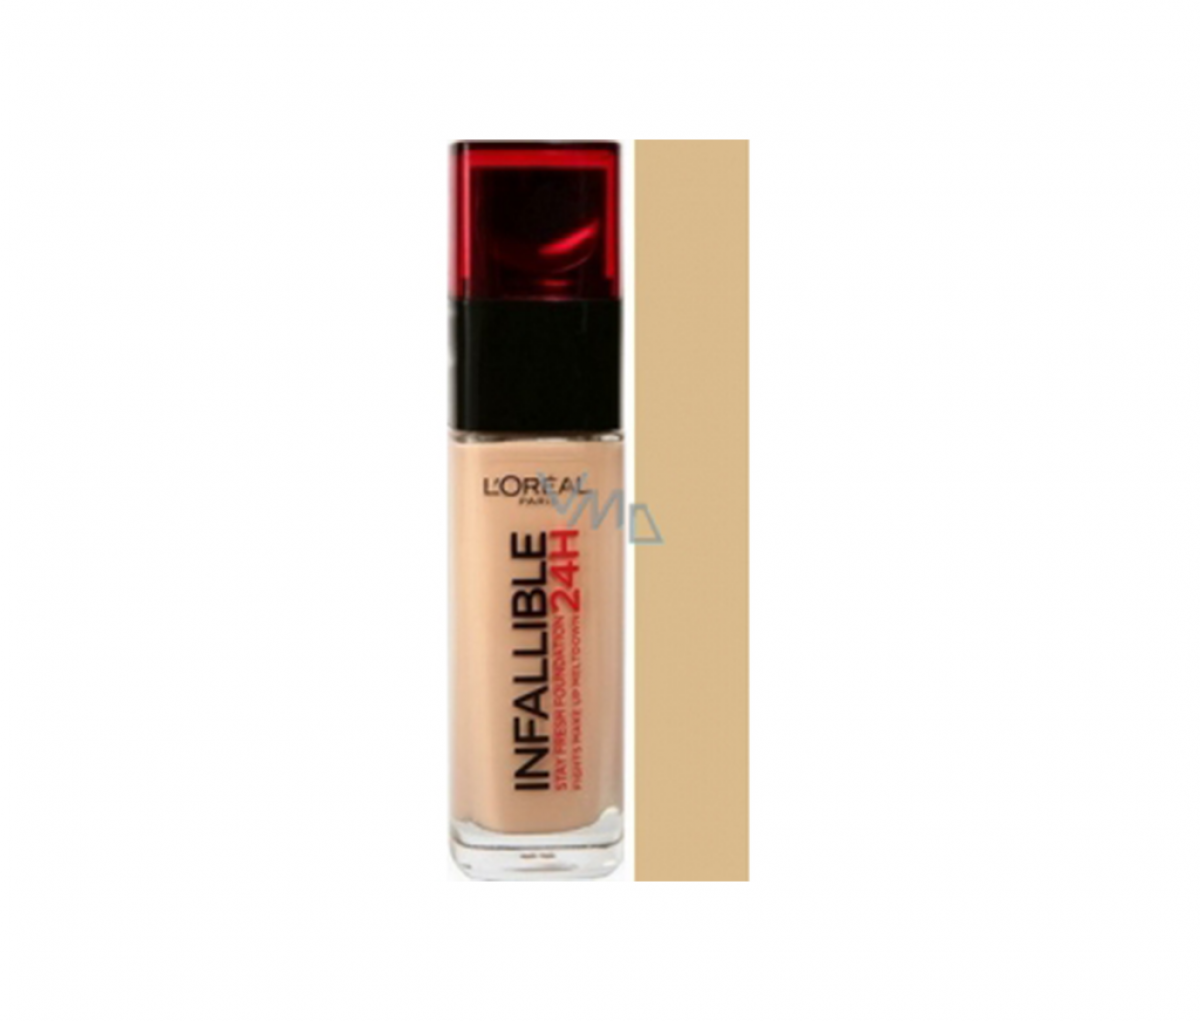 L'Oreal  Indefaectible N220 Sand Foundation